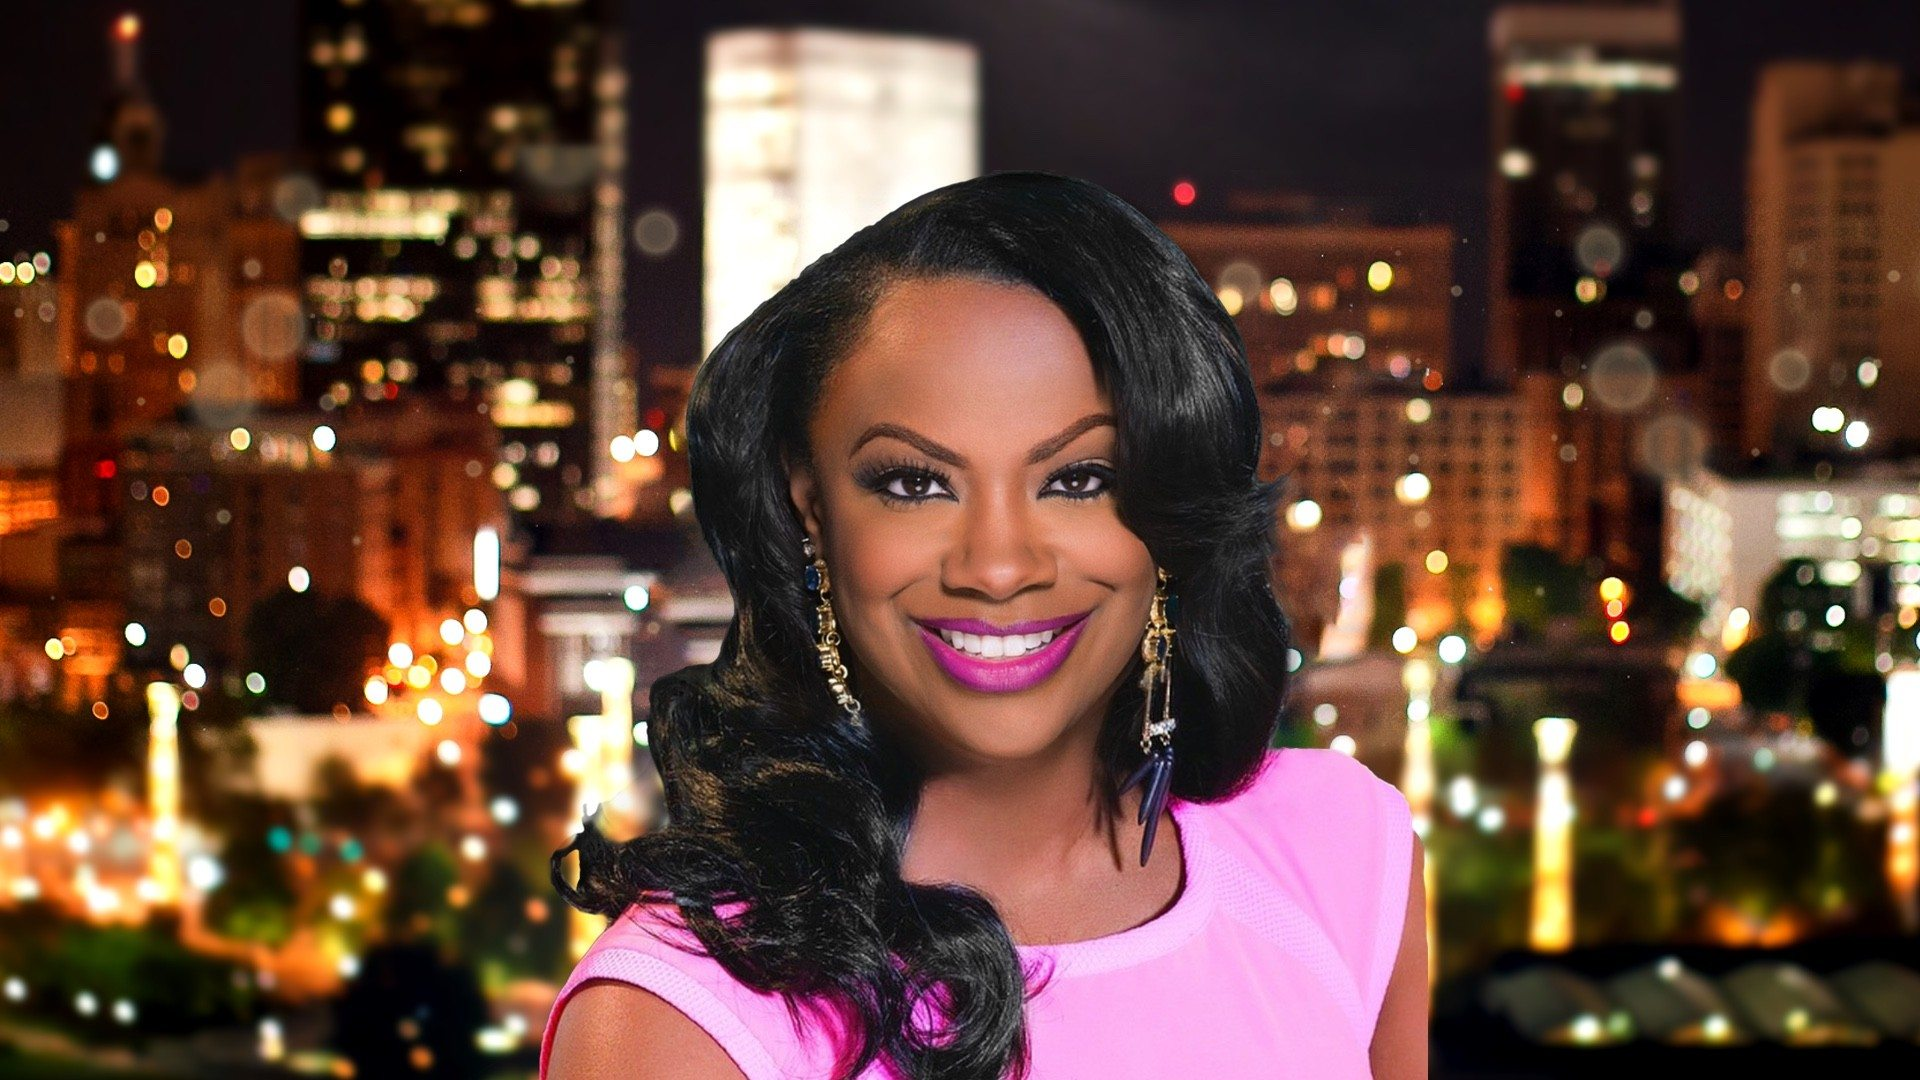 Kandi Burruss Shares Another Special Guest She'll Be Having On Her Racy Show 'Welcome To The Dungeon'